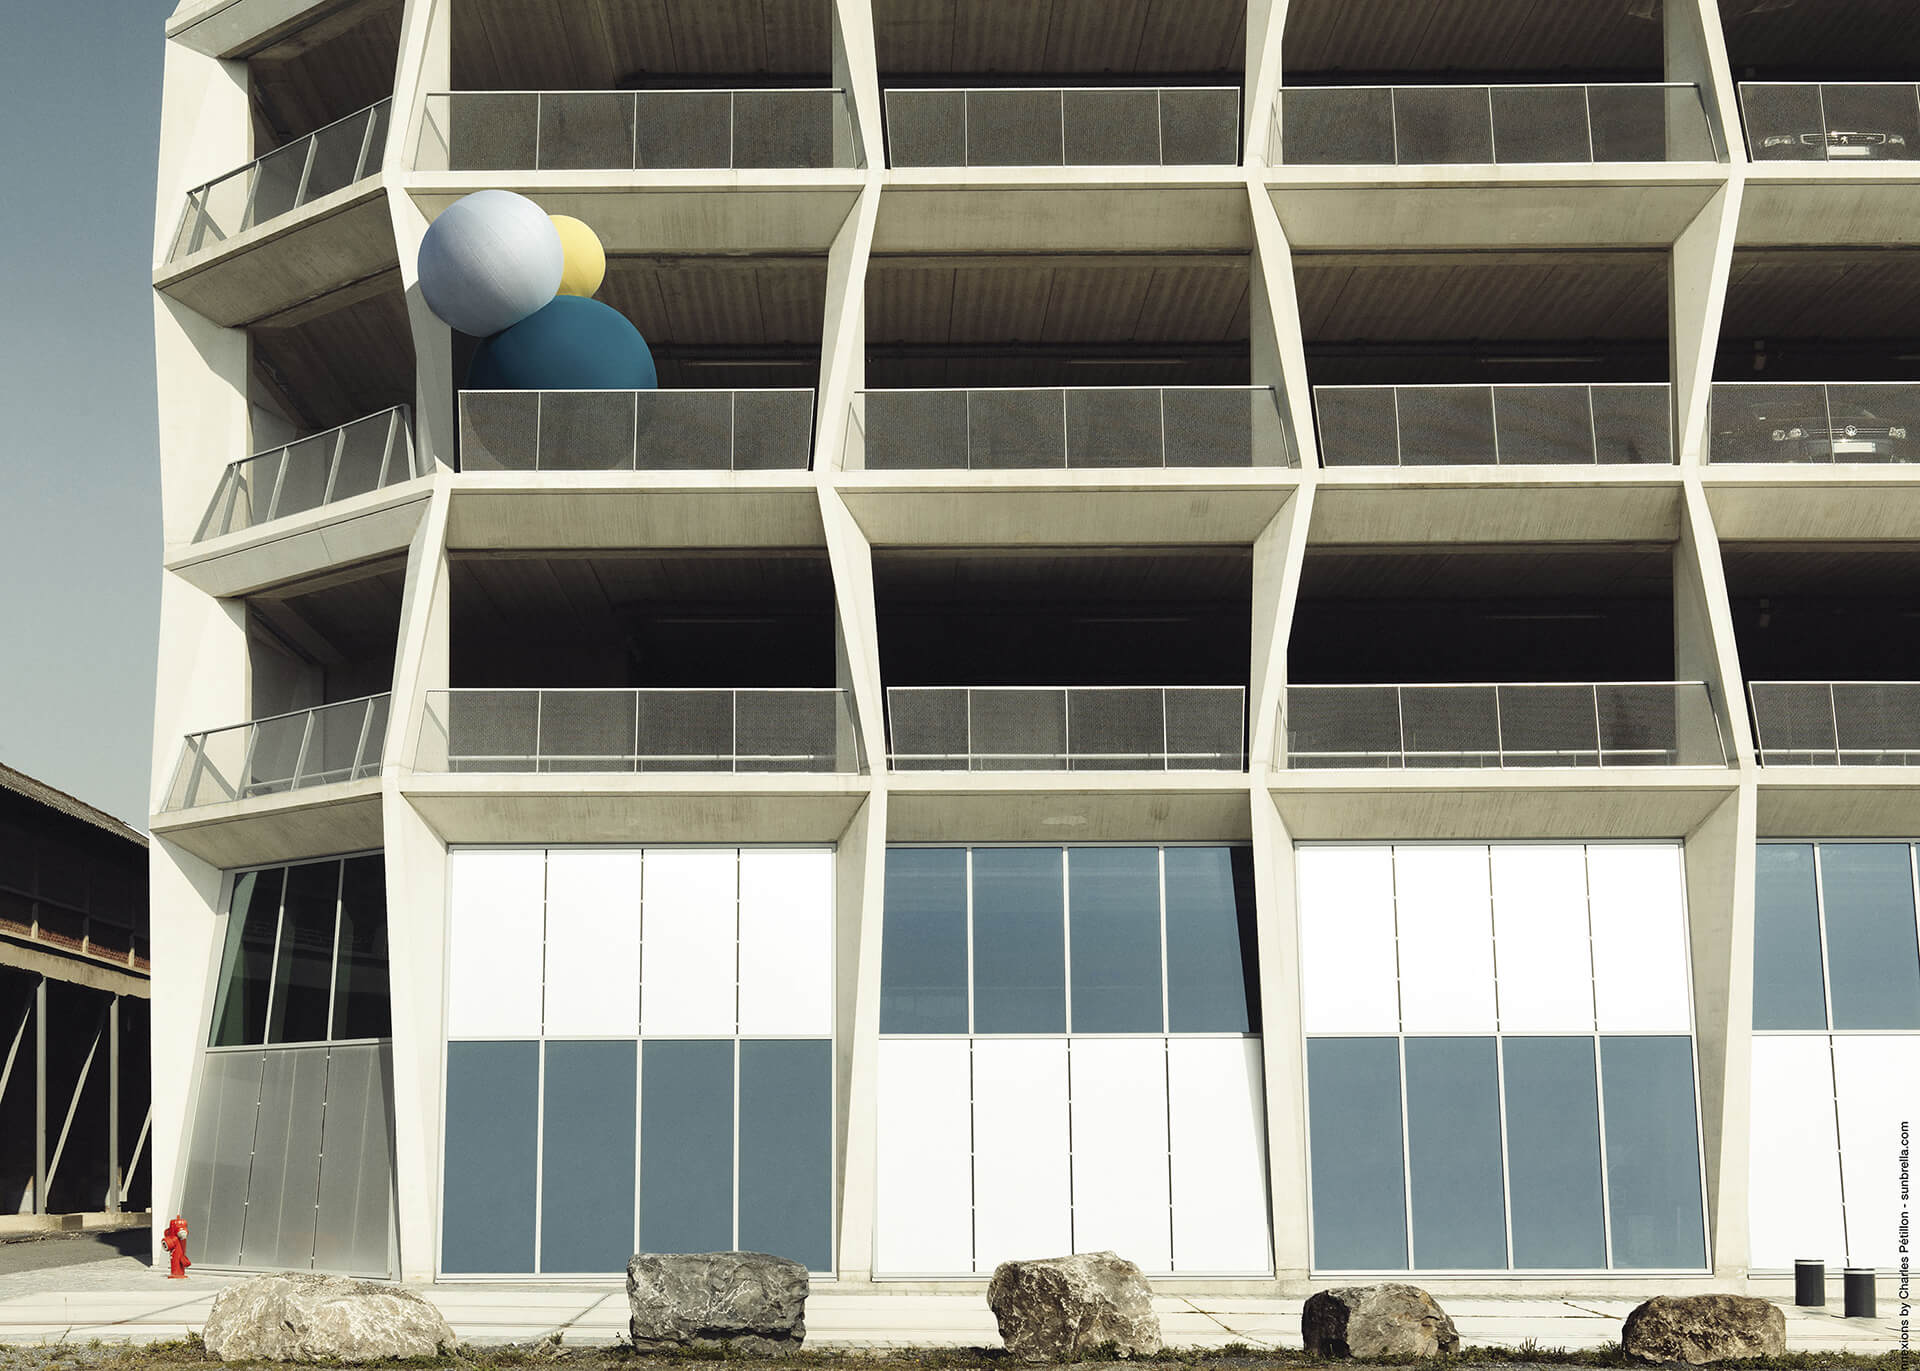 The Sunbrella Connexions balloons made using Sunbrella upholstery fabrics sit on a balcony.